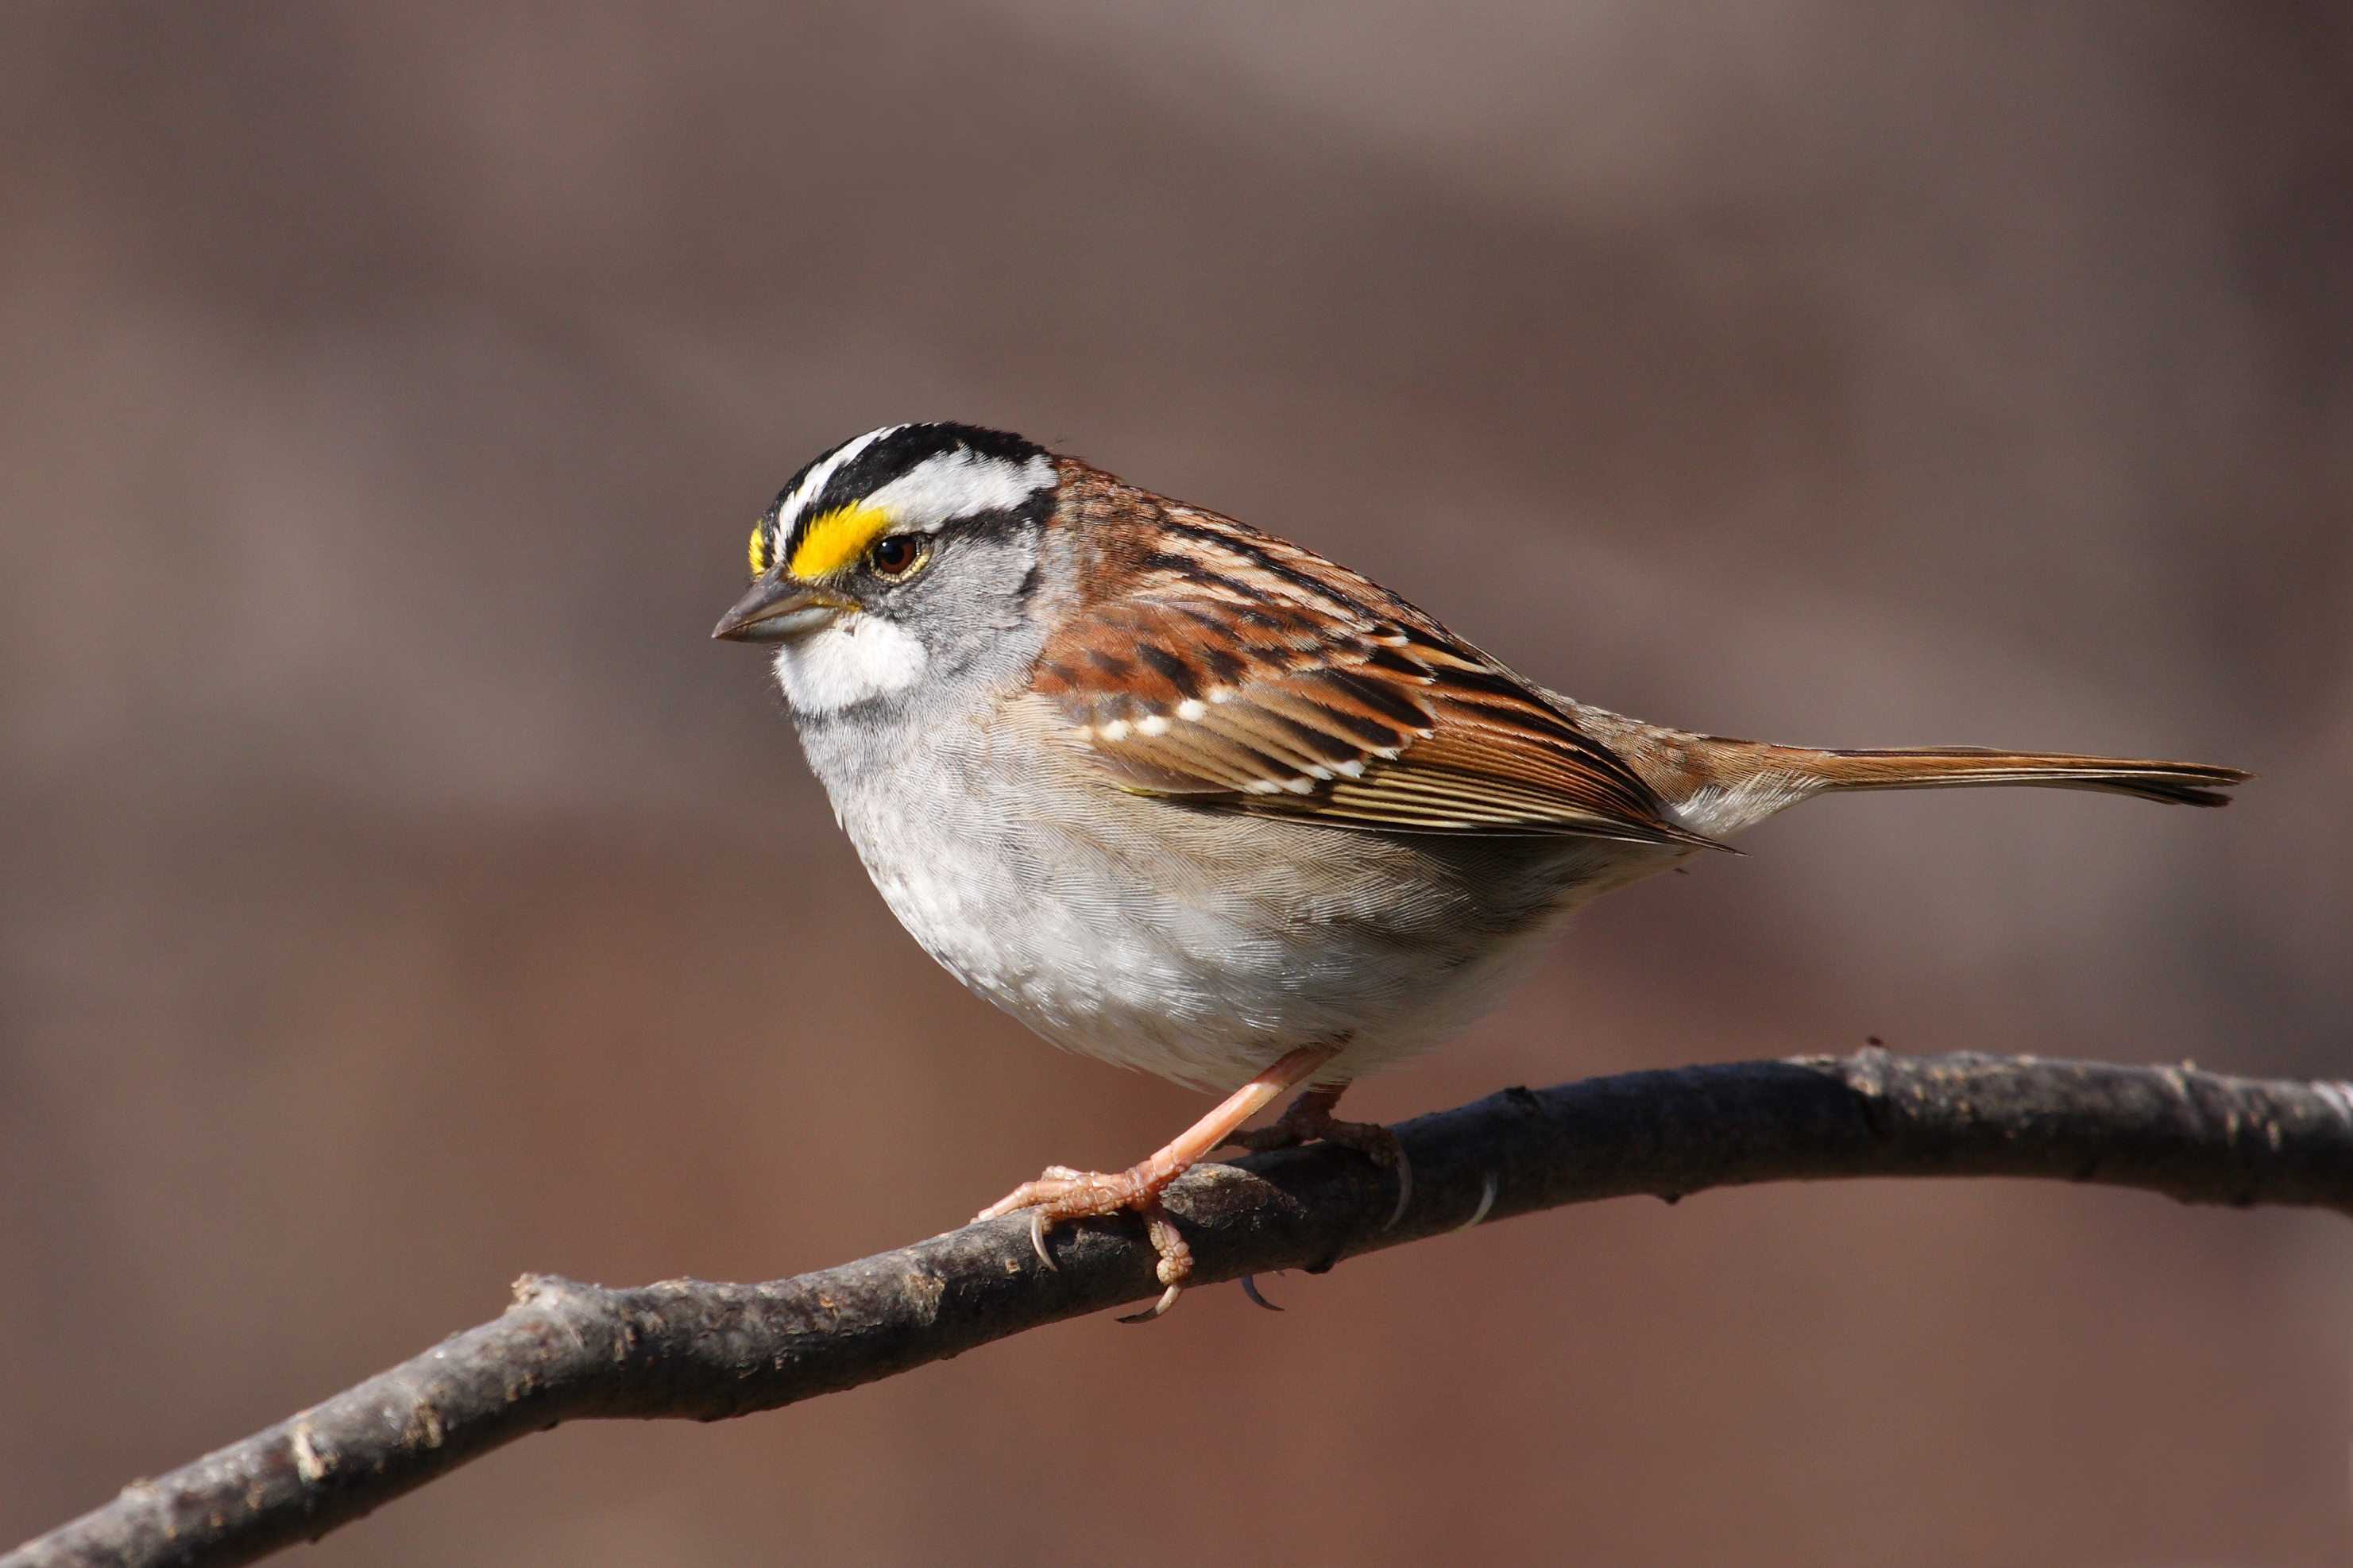 White-throated sparrow - Wikipedia